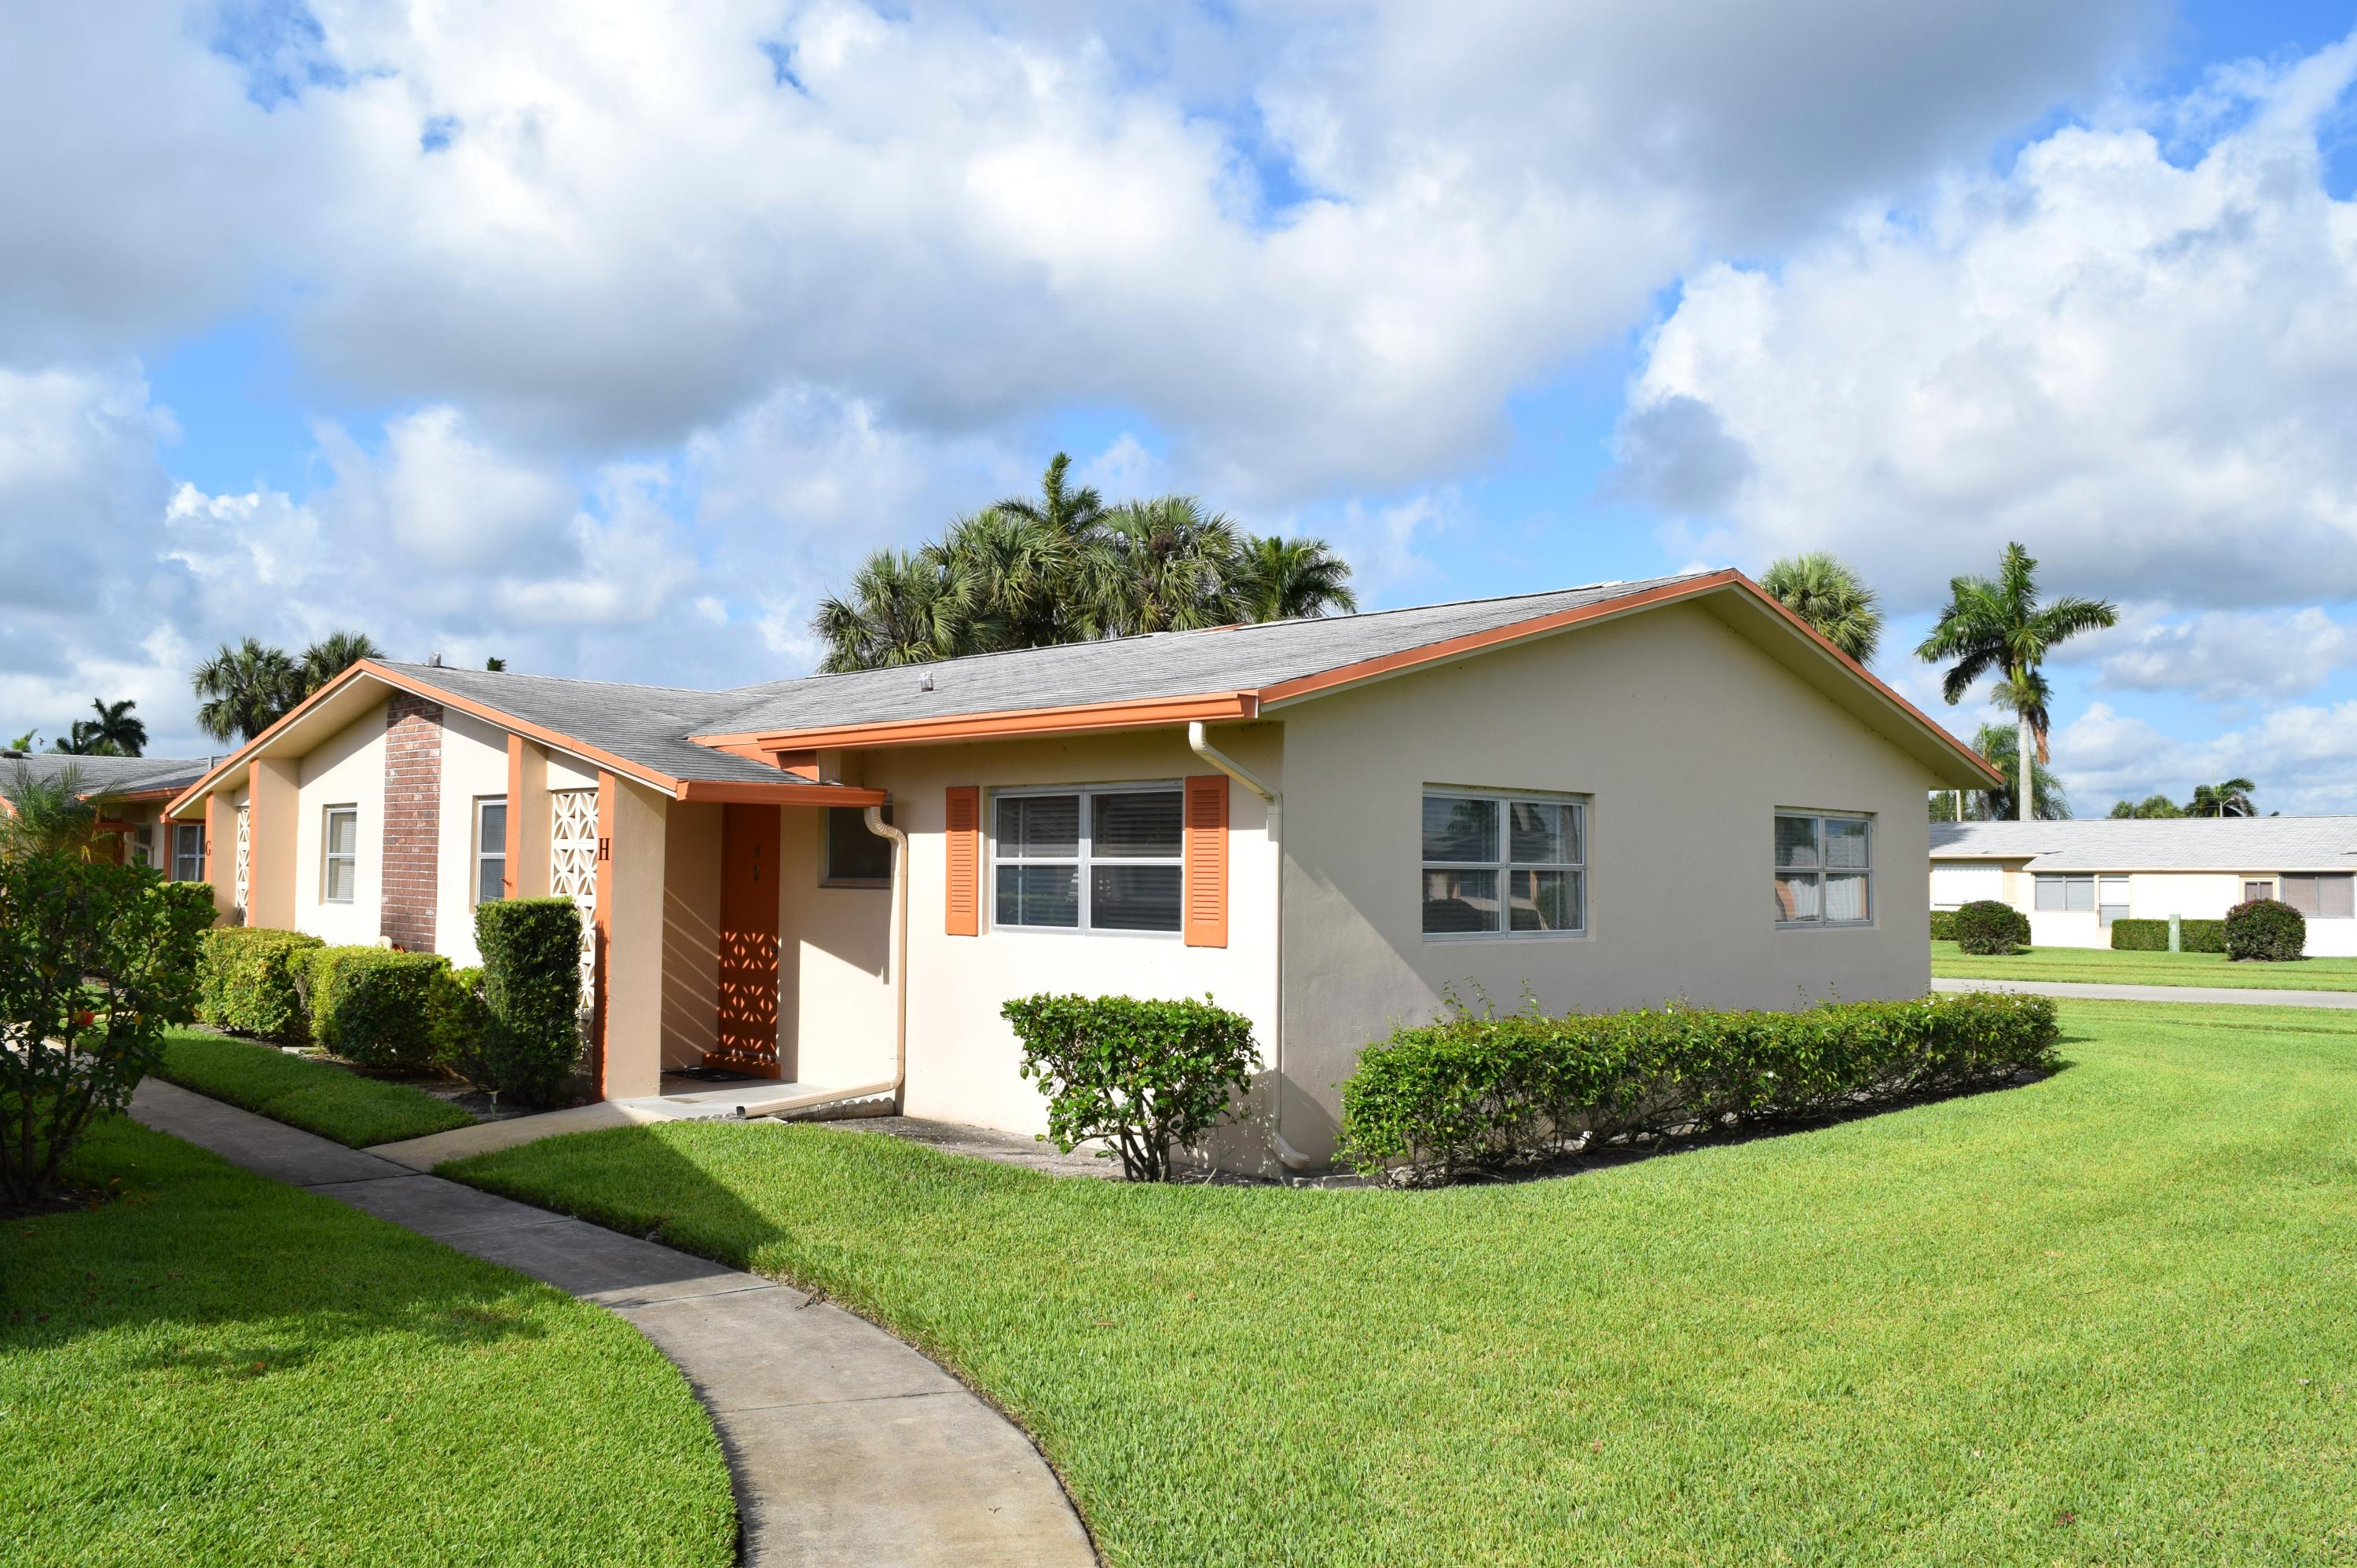 West Palm Beach- Florida 33415, 2 Bedrooms Bedrooms, ,1 BathroomBathrooms,Residential,For Sale,Dudley,RX-10529924